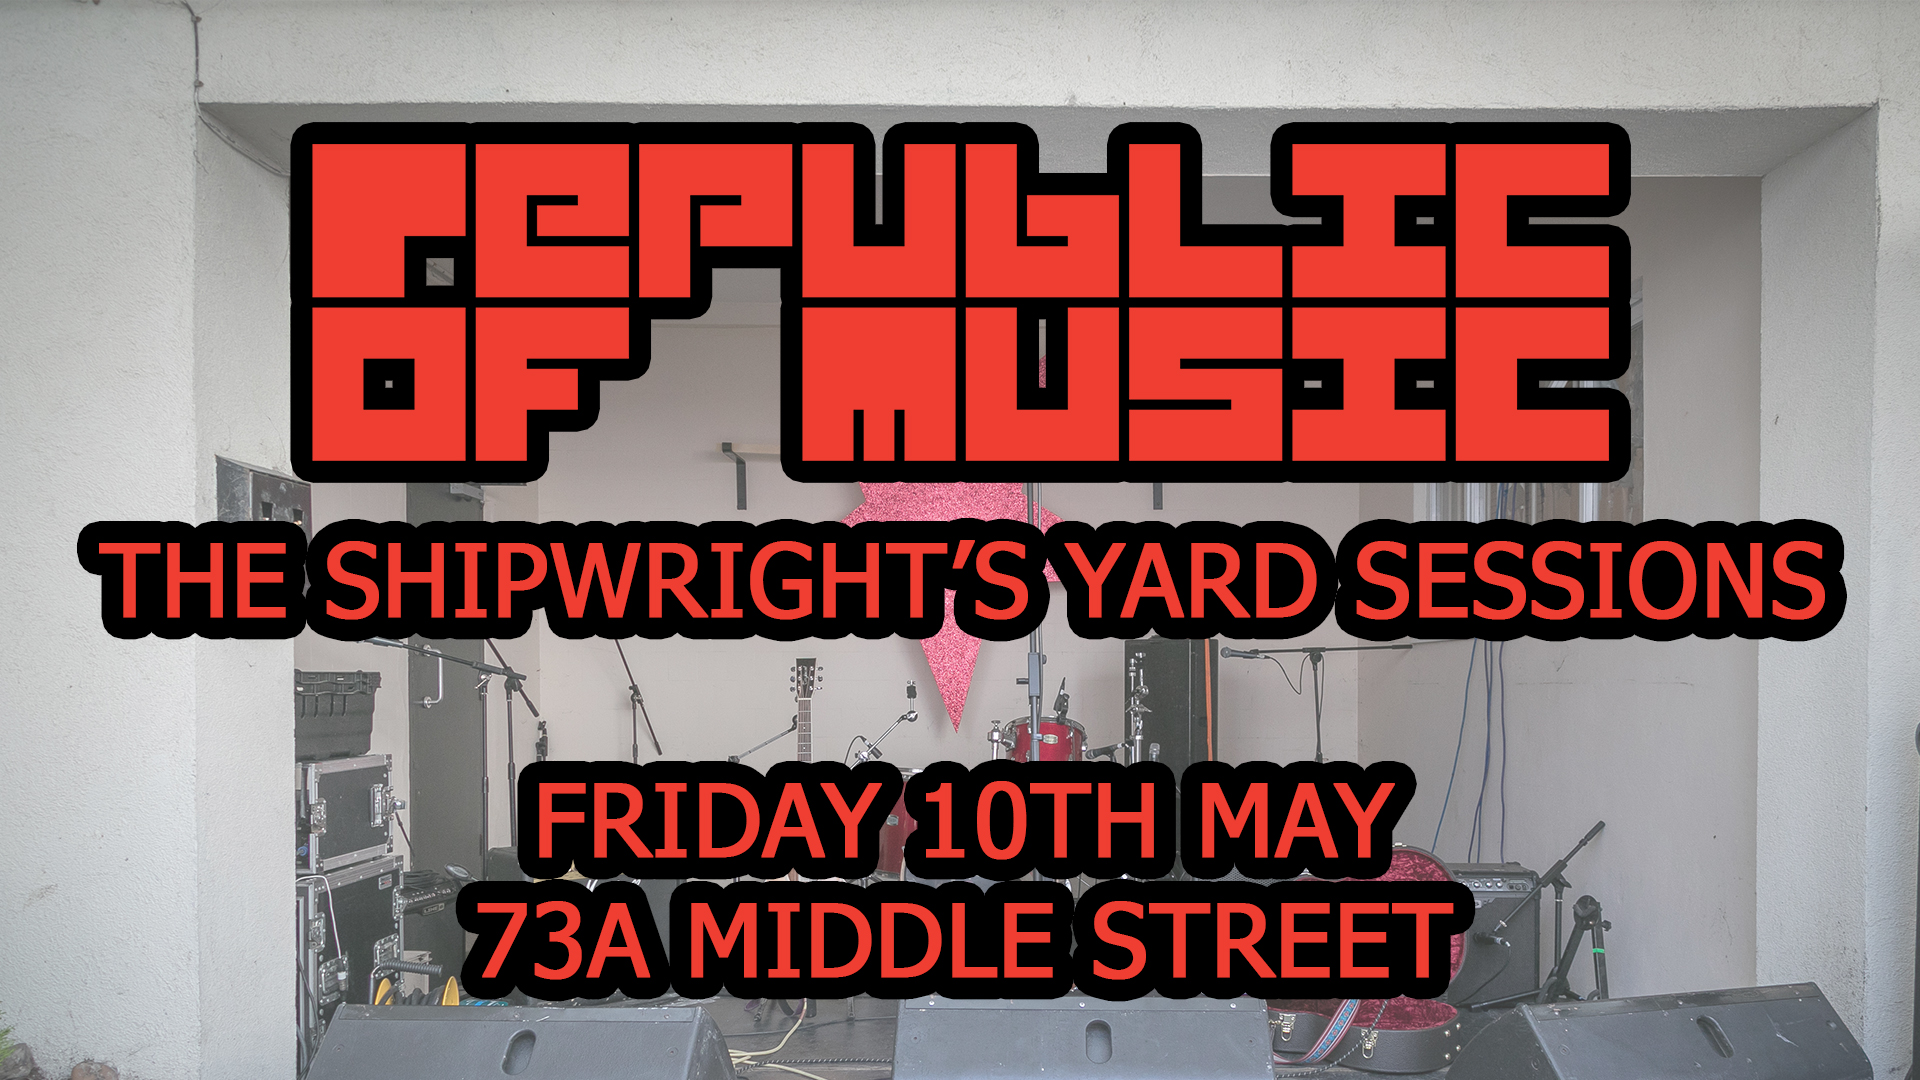 The Shipwrights Yard Sessions 2019 – LINE-UP ANNOUNCED